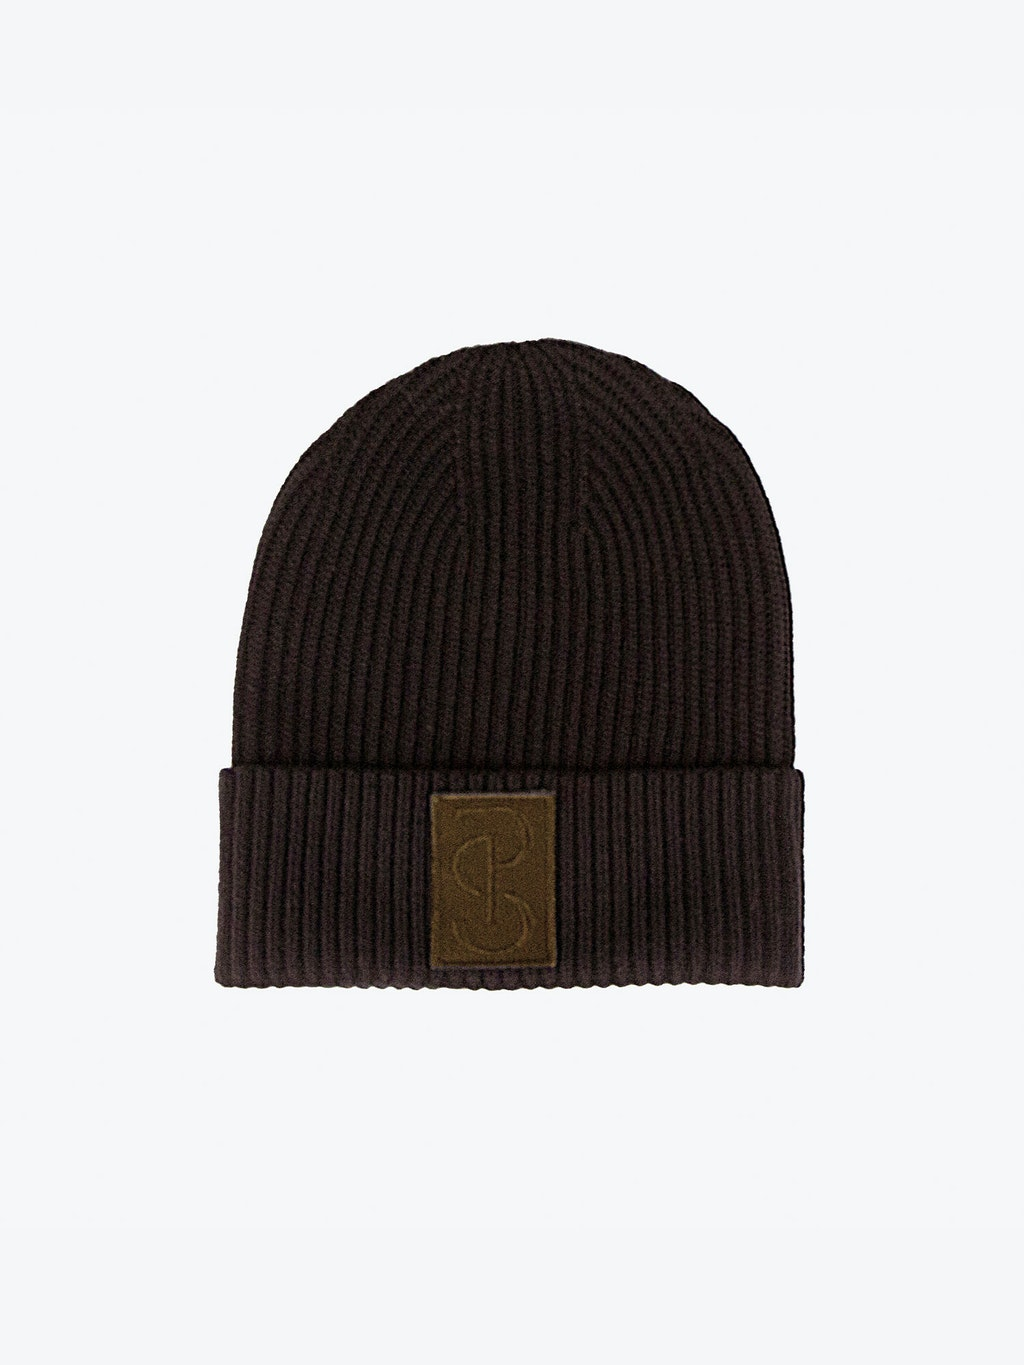 Ps of Sweden Beanie Sally in coffee